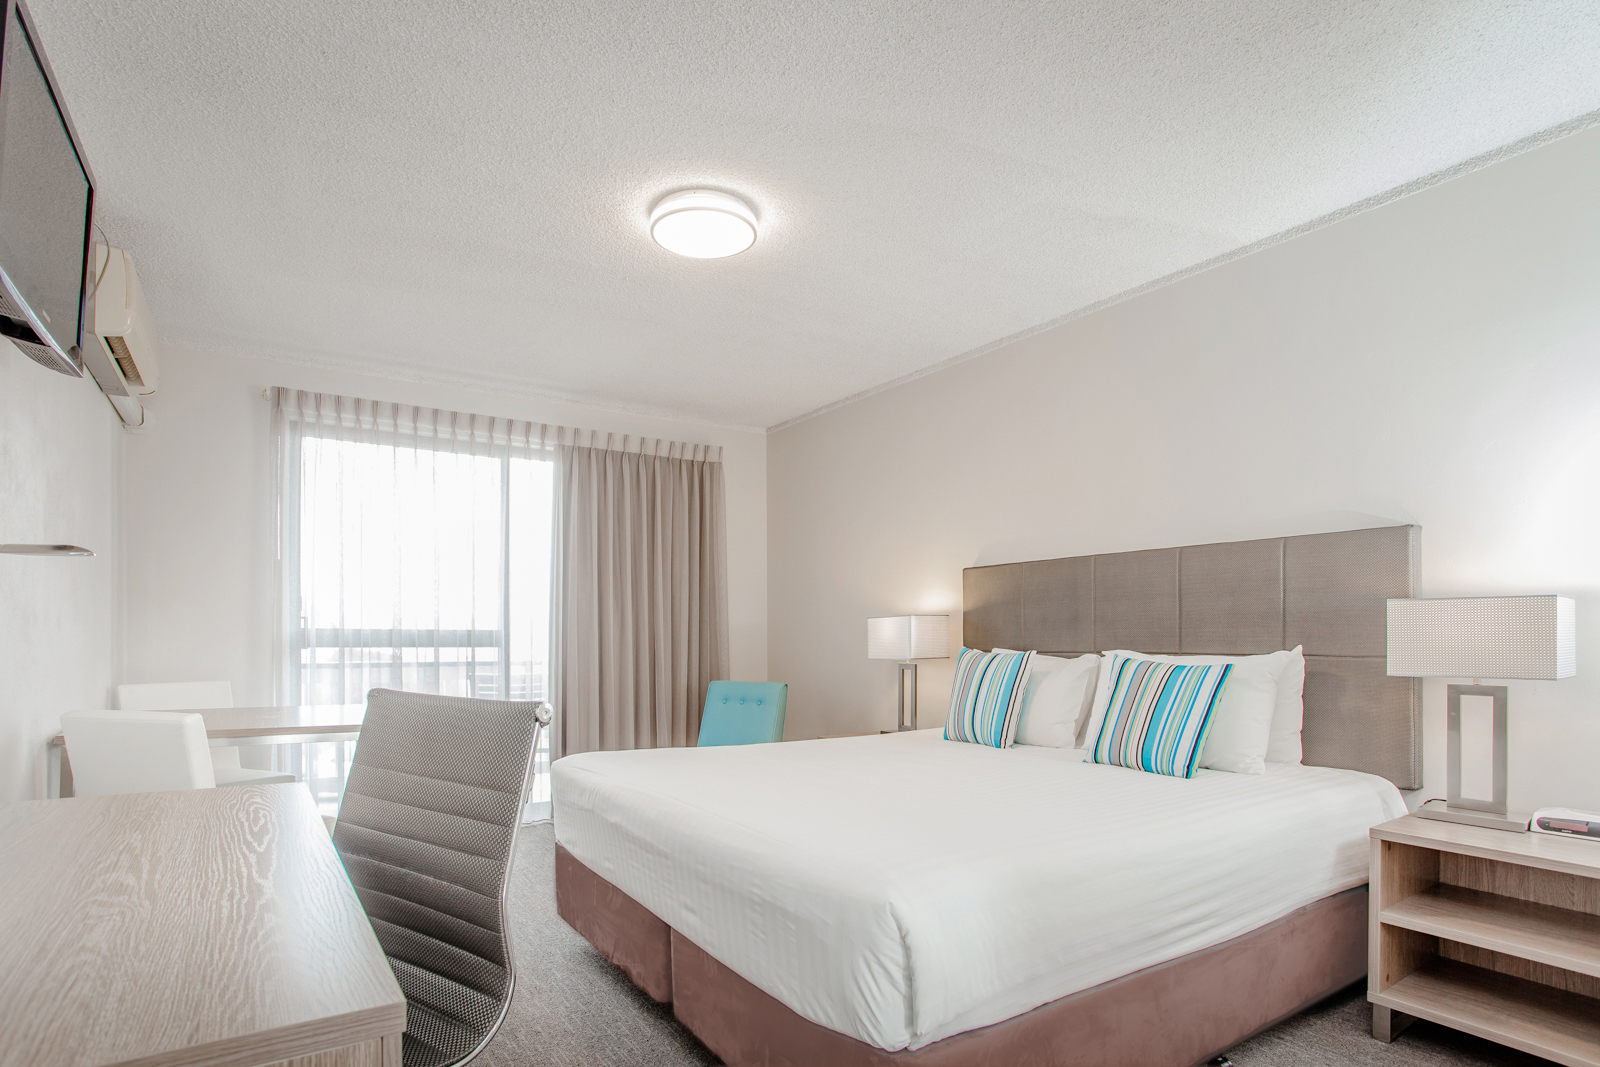 86_lighter_-softer-bed-surround-2